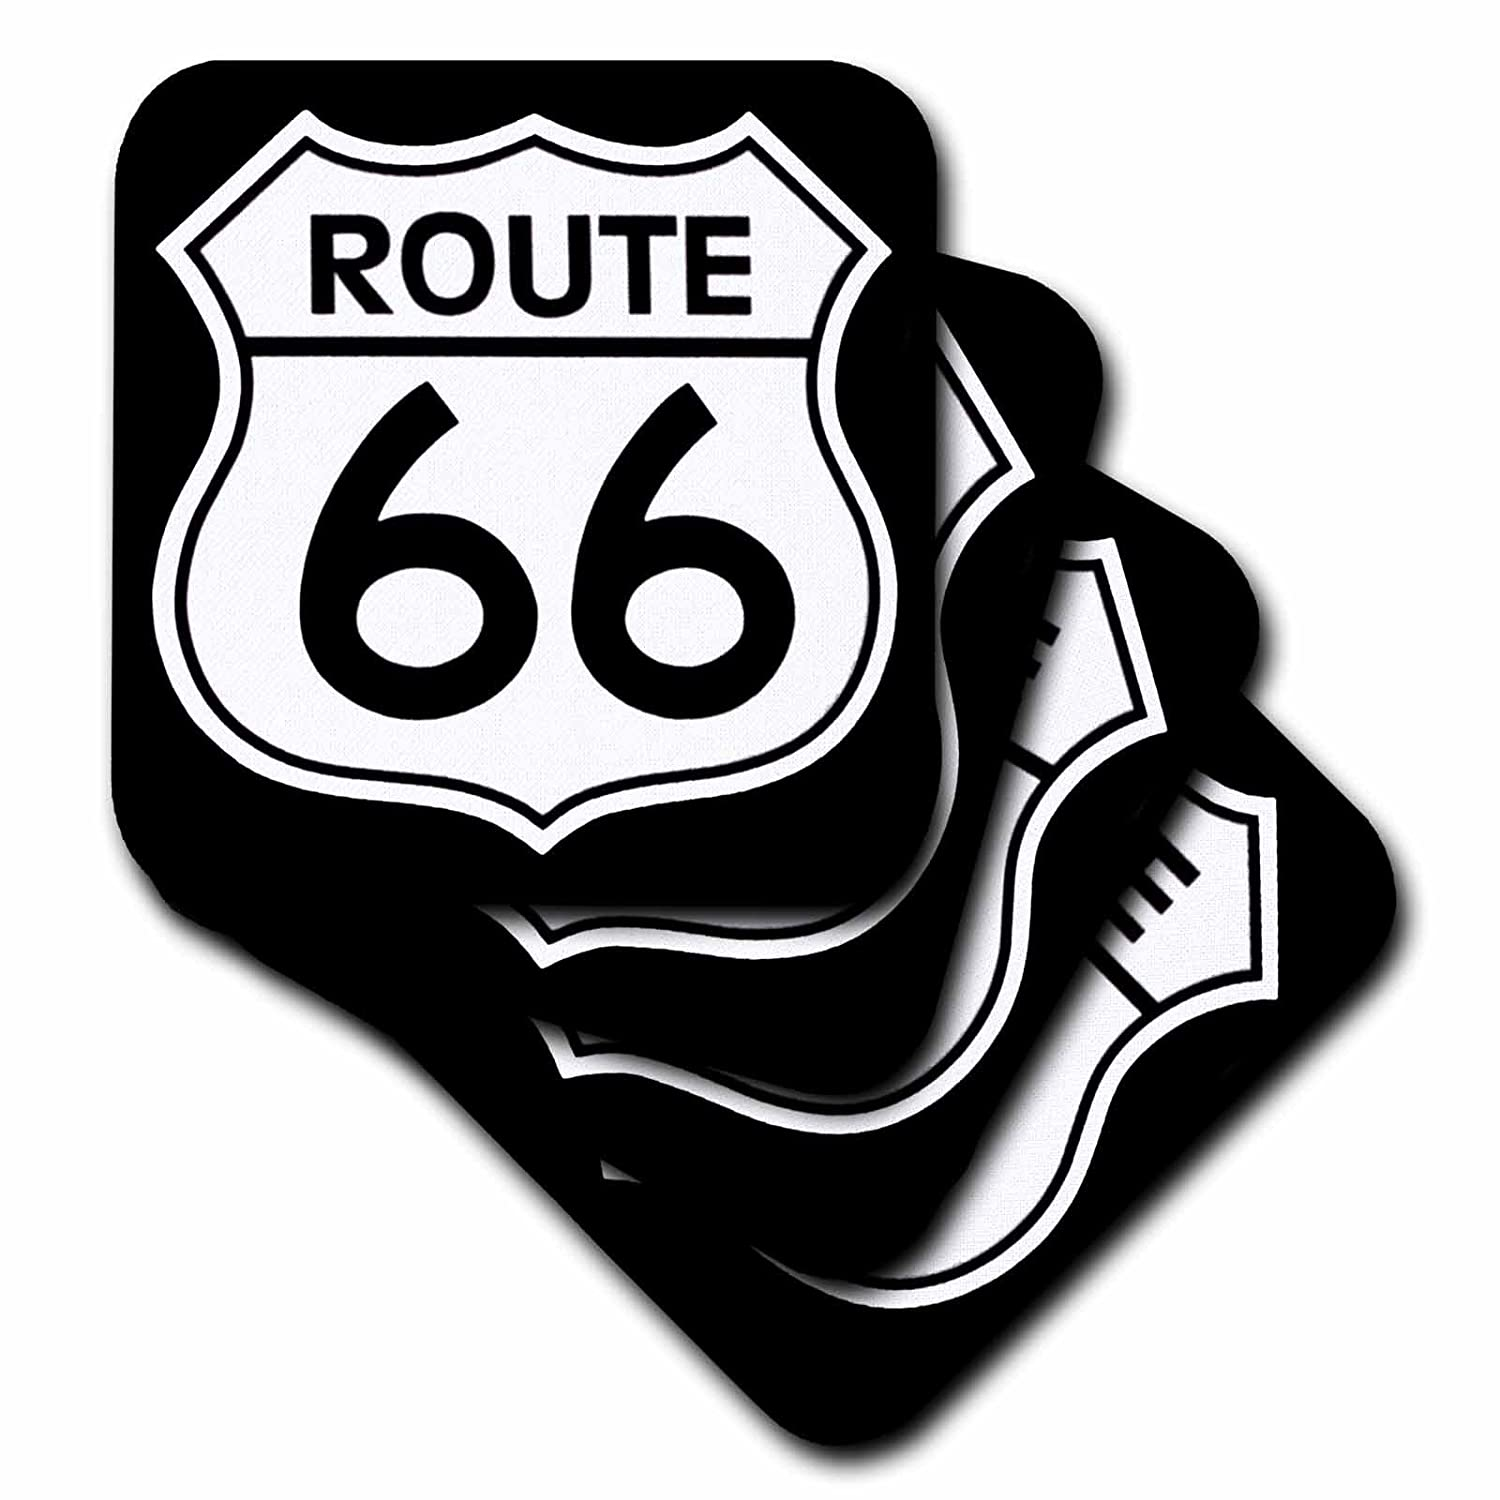 Set of 4 3dRose cst/_110012/_3 Route 66 Black and White-Ceramic Tile Coasters